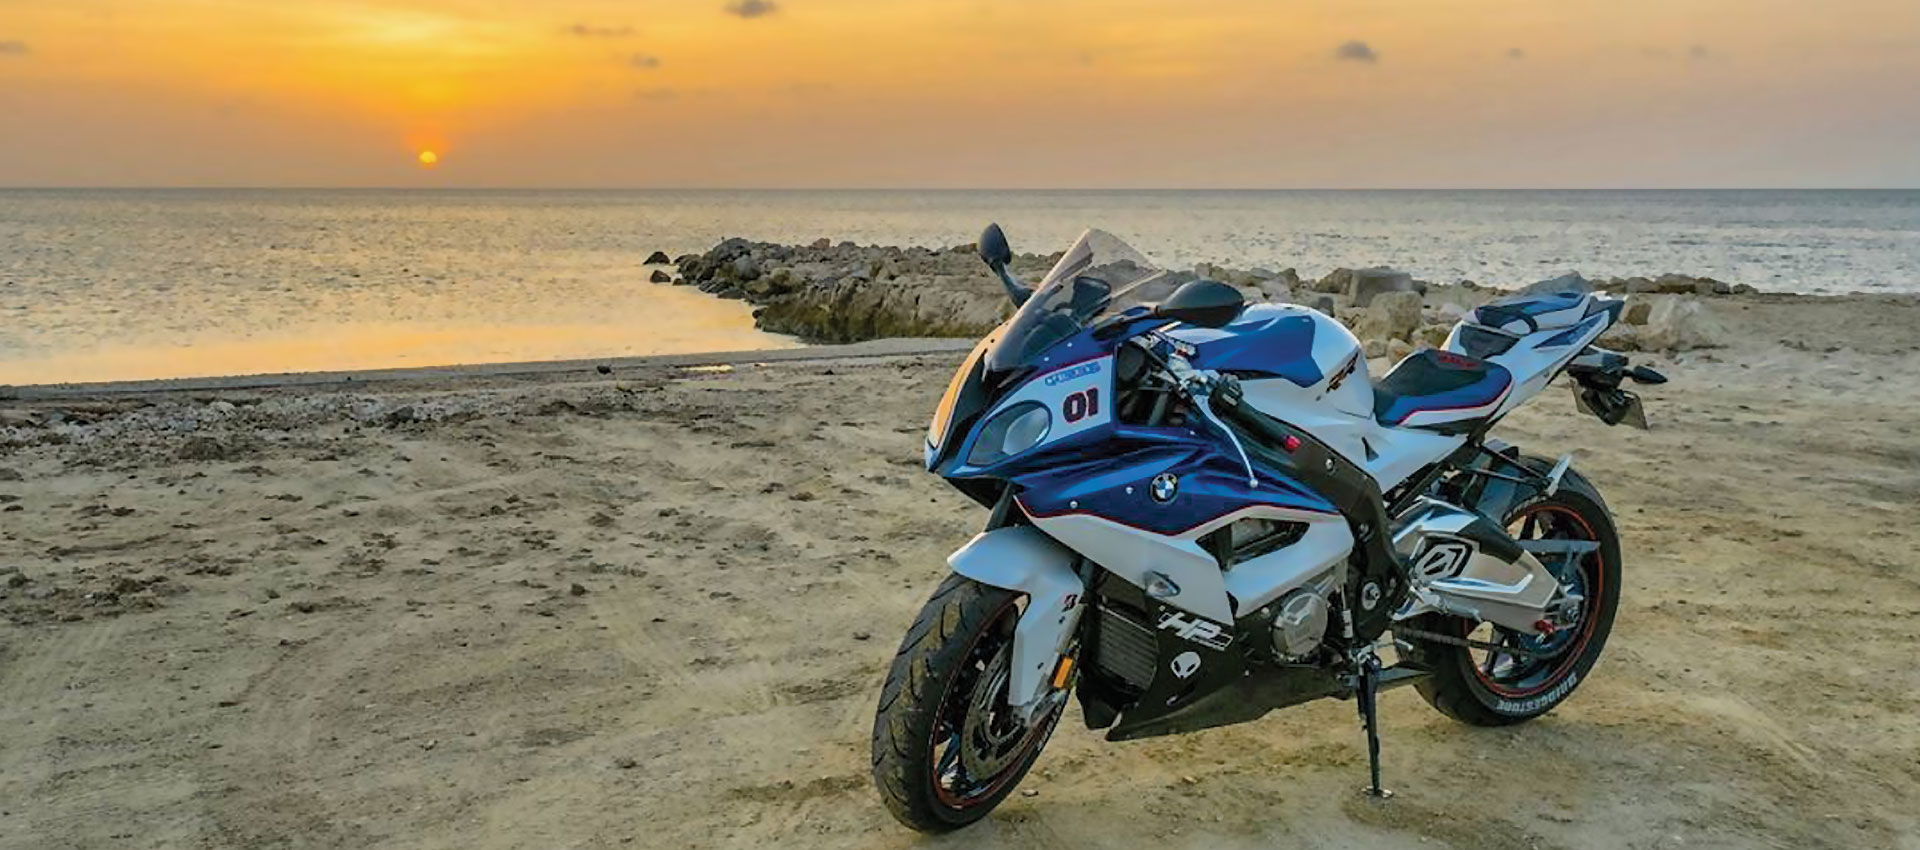 BMW S1000RR 15-18 LUIMOTO PRODUCTS